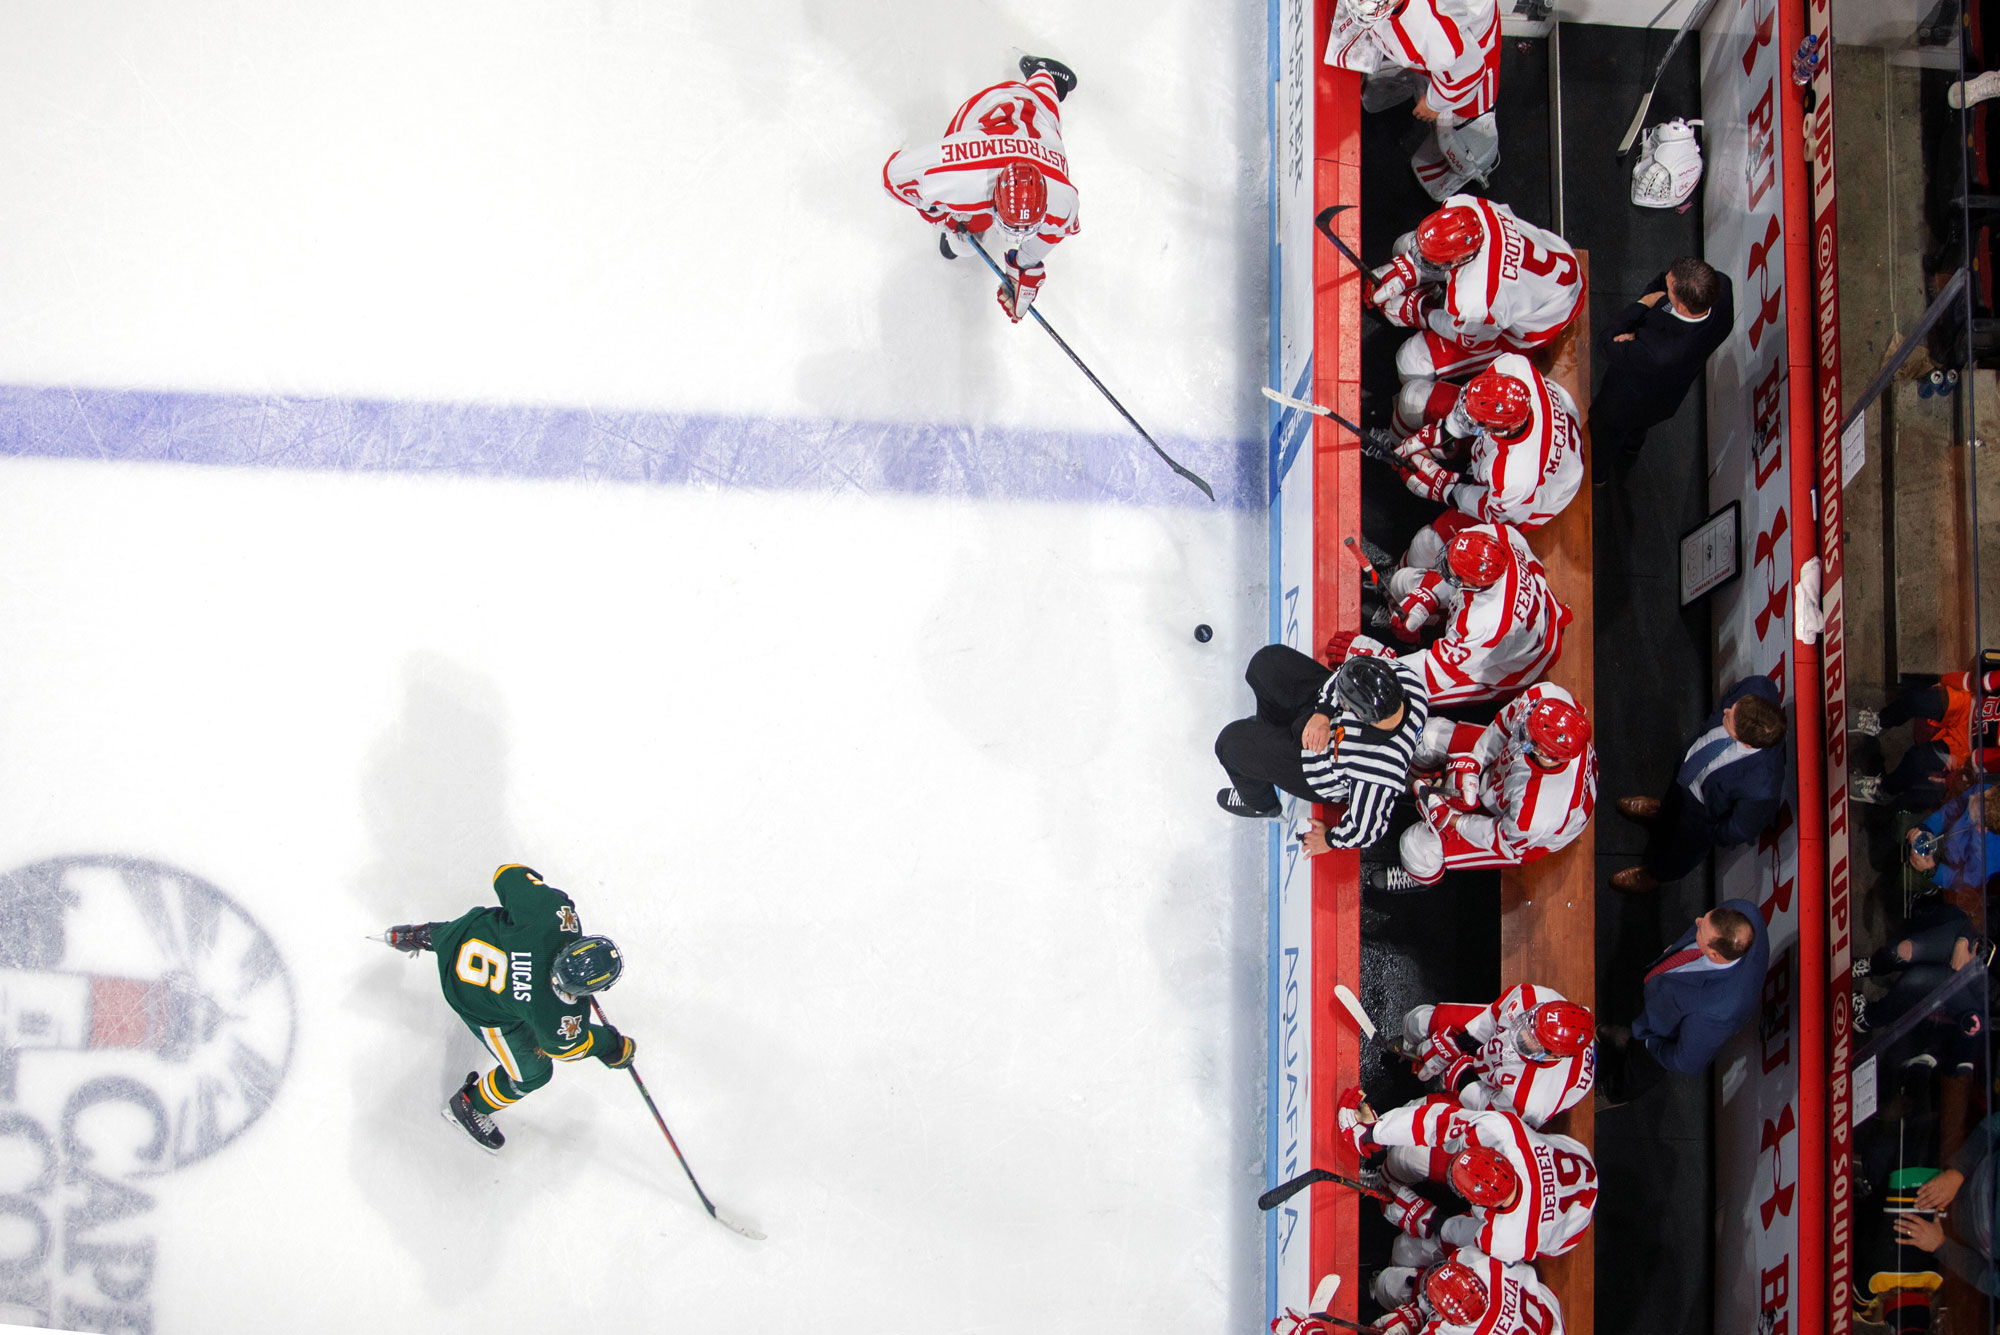 A birds-eye view of the men's hockey team during a game